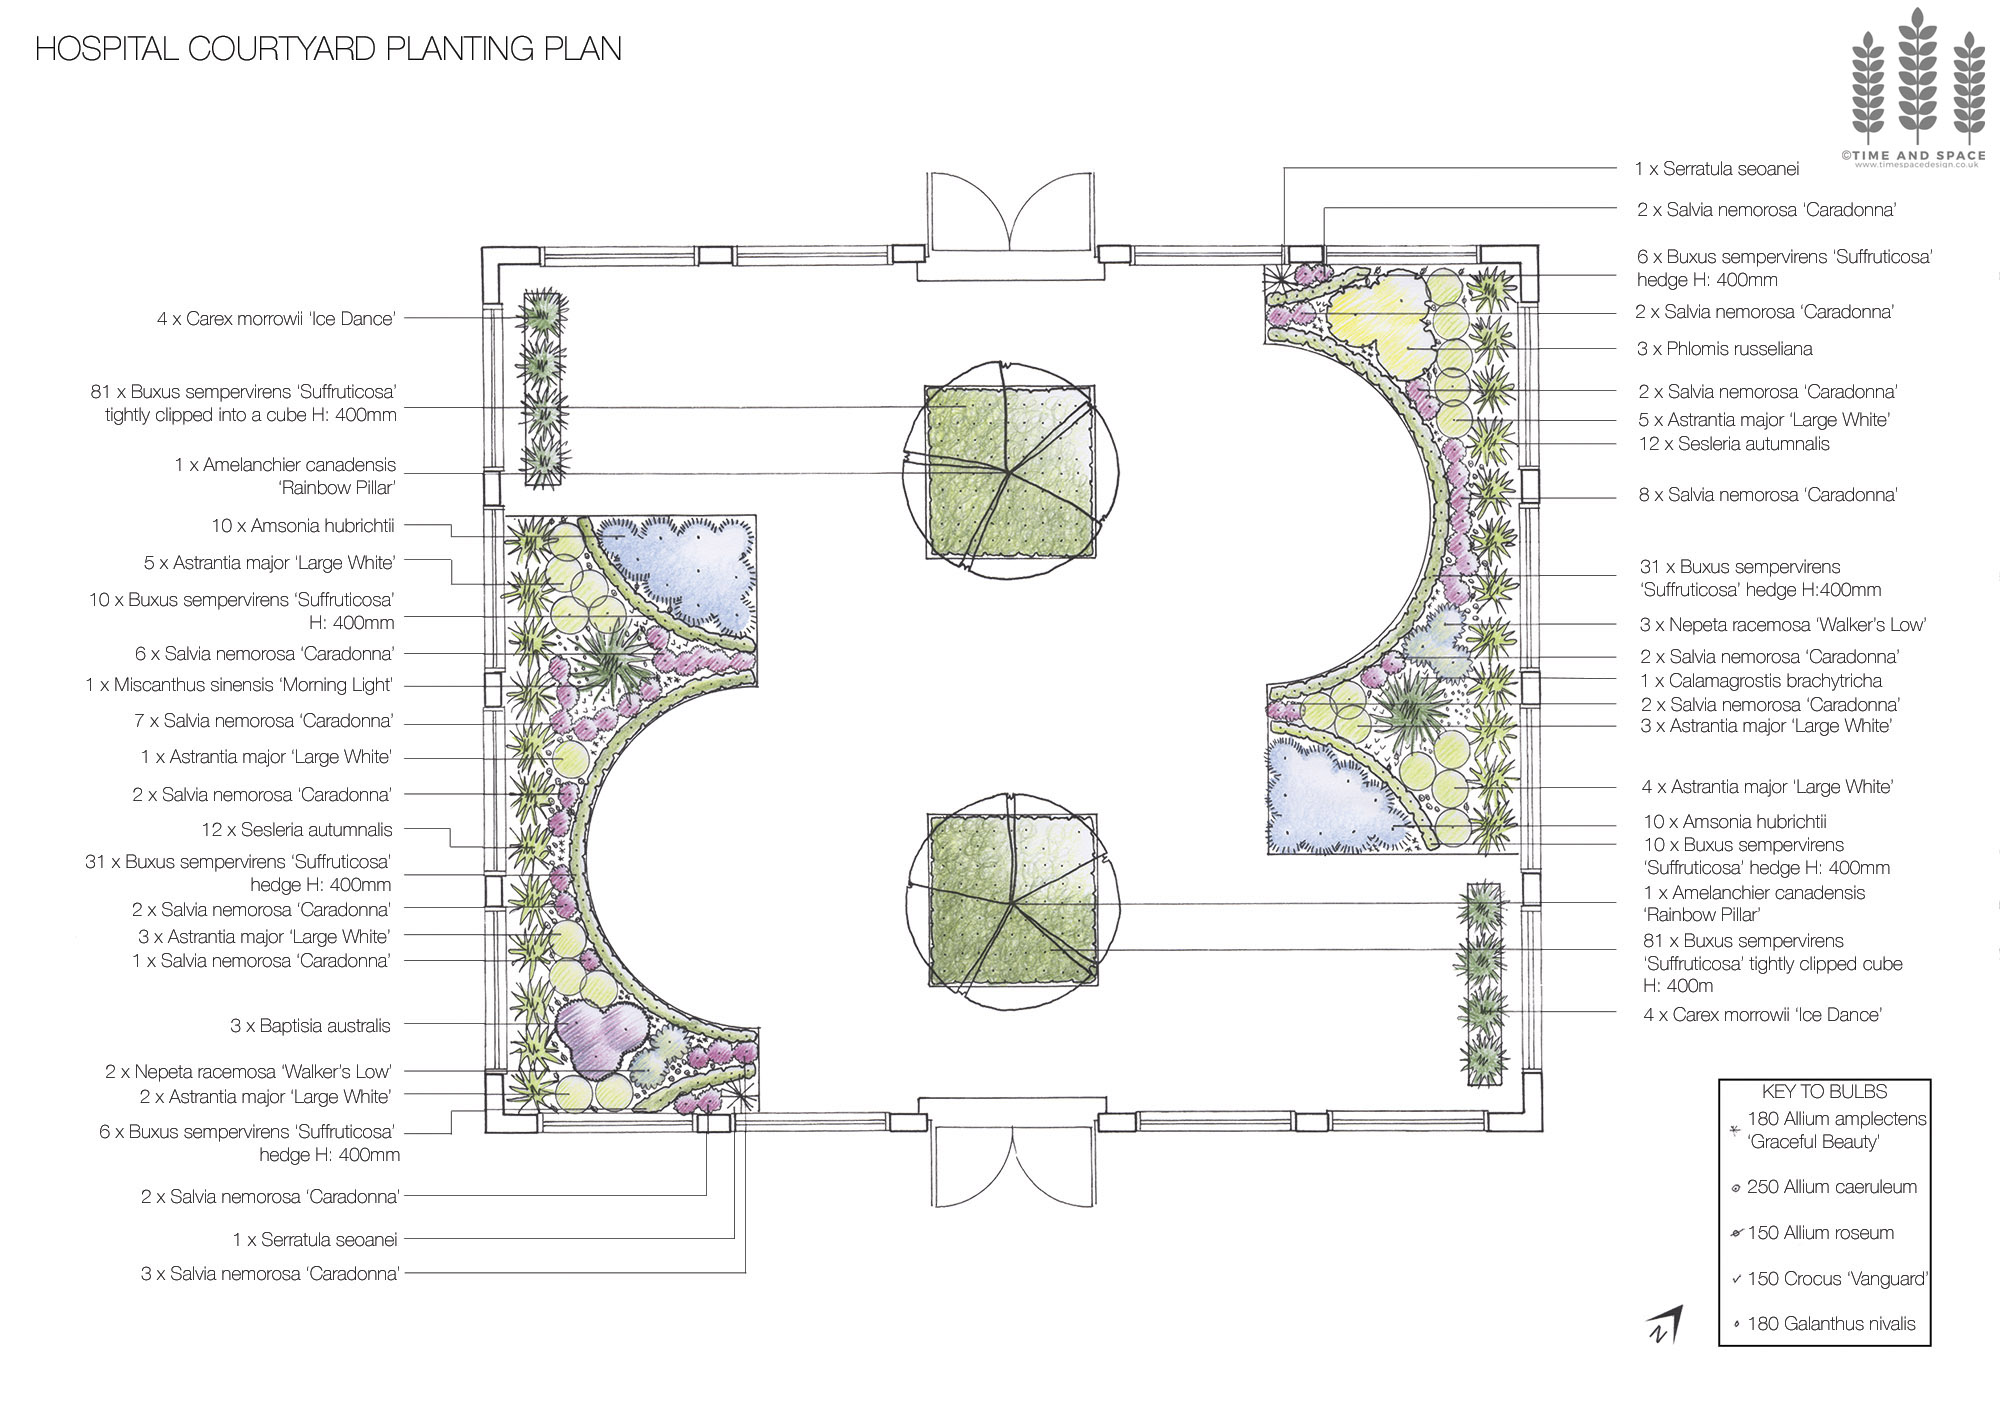 Hospital Courtyard planting plan